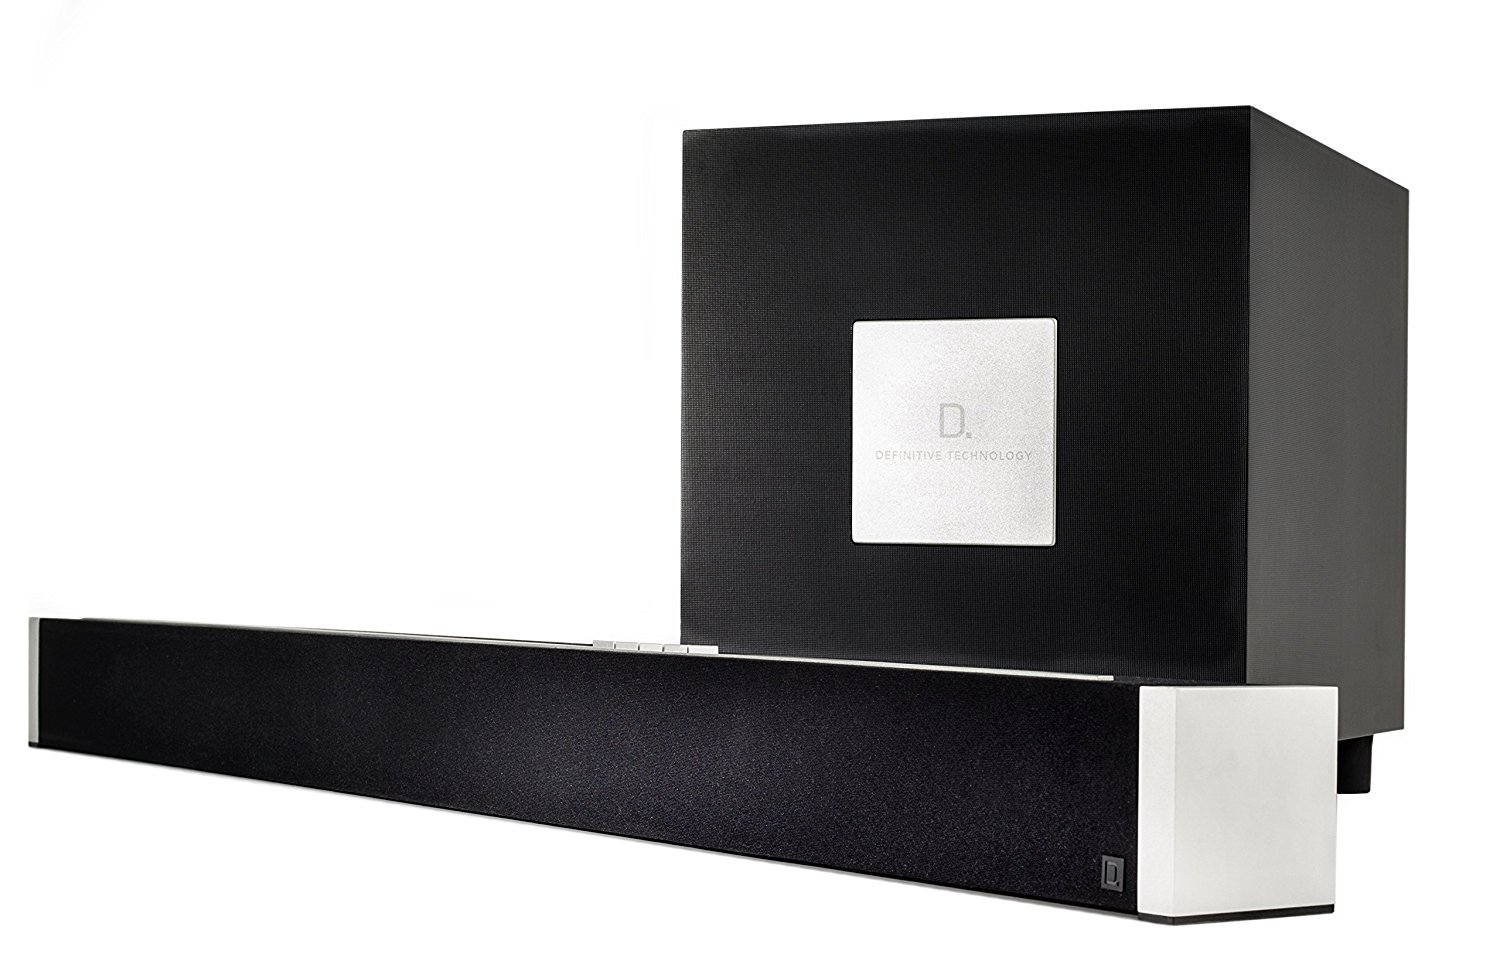 Definitive Technology W Studio Wireless Sound Bar and Sub Music Streaming System (BVFBC-A) photo